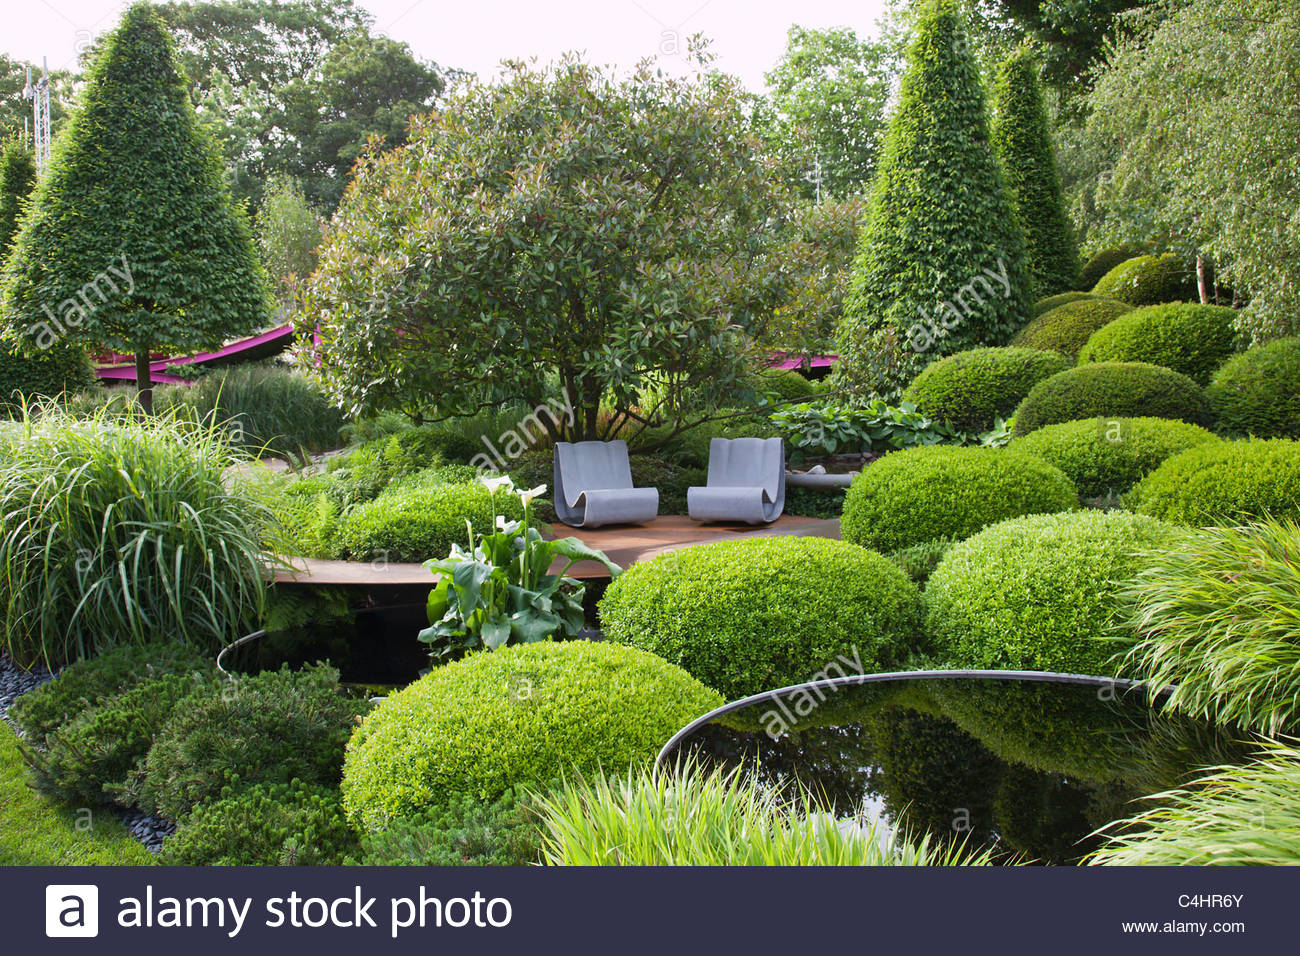 Wonderful Topiary Box Part - 12: A Contemporary Green Garden With Grasses, Topiary Box Mounds, Pool And  Seats. Designer